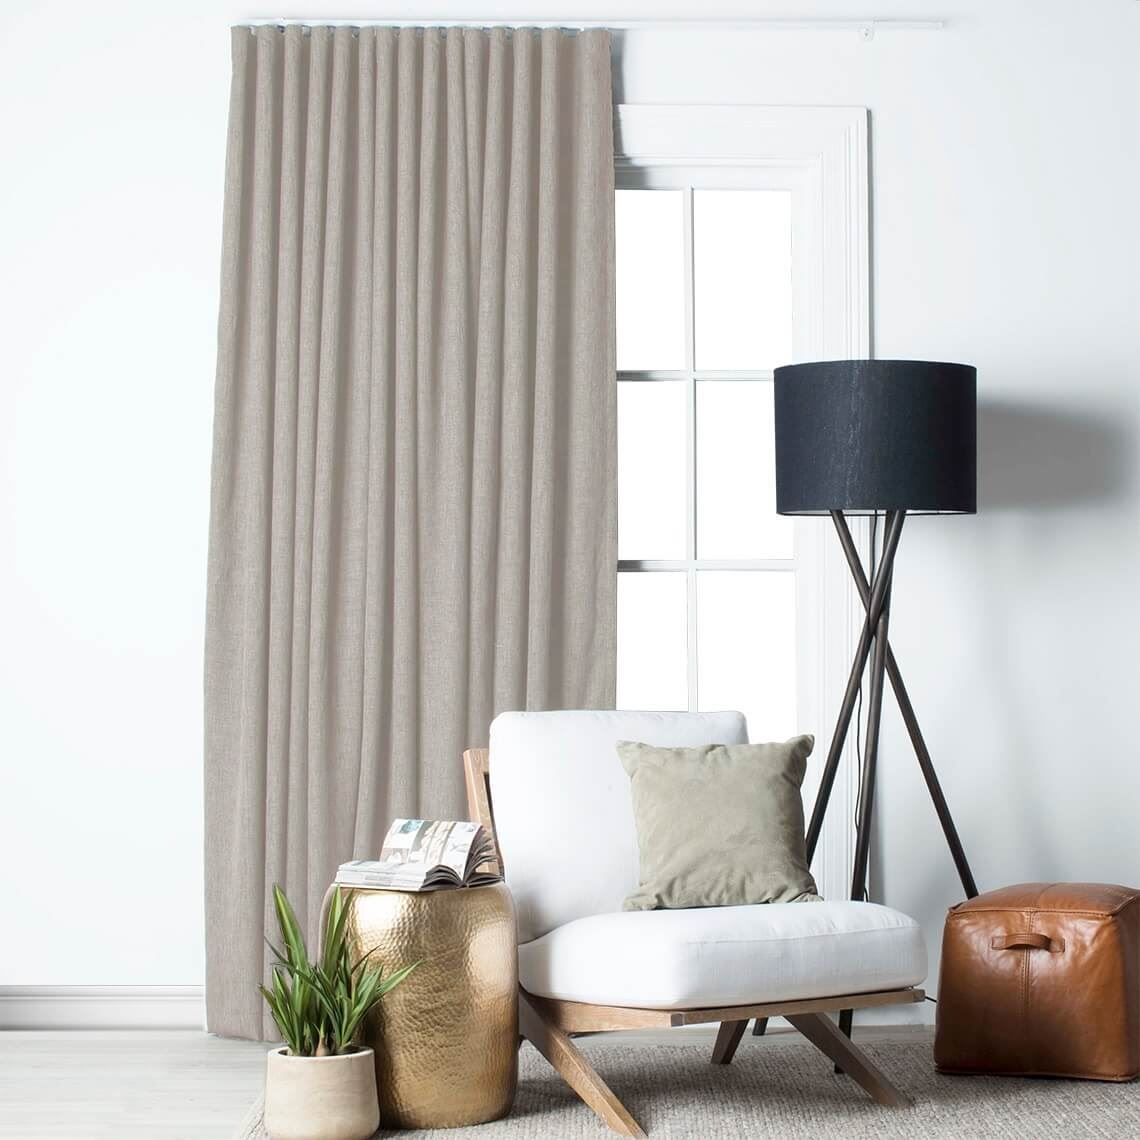 Lyndon Blockout S Fold Curtain Size W 480cm x D 1cm x H 280cm in Stone 100% Polyester Freedom by Freedom, a Curtains for sale on Style Sourcebook